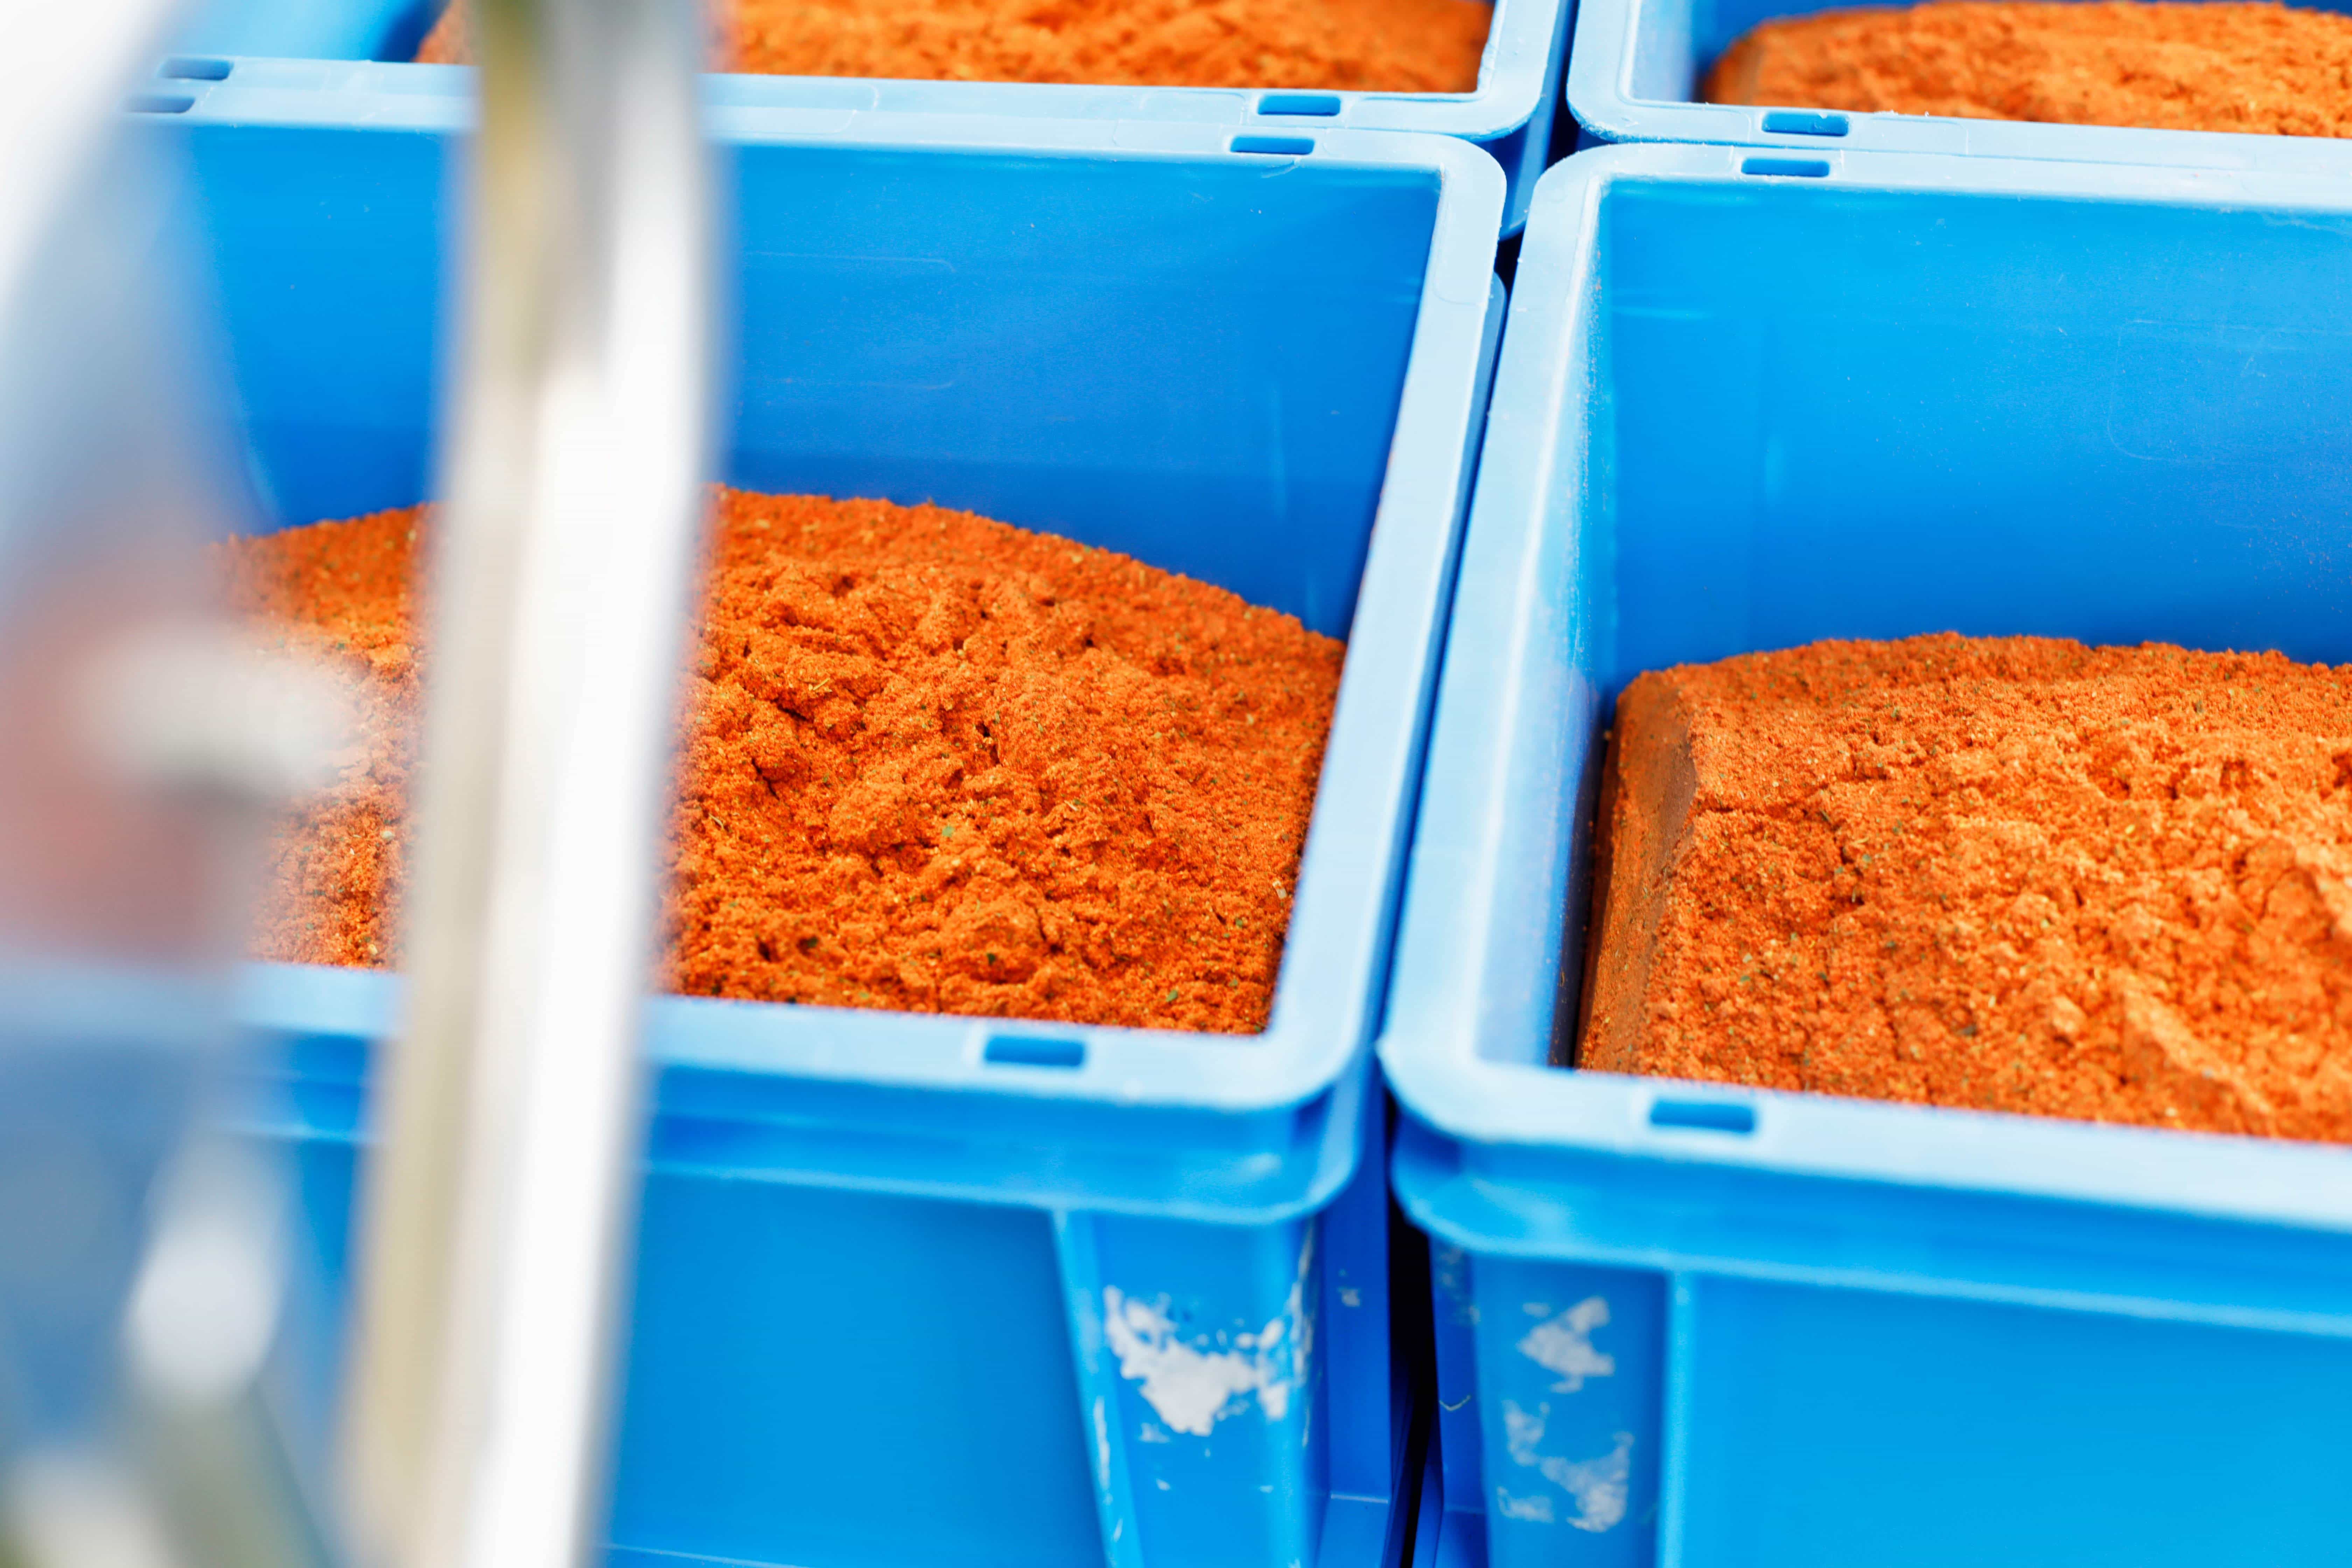 Orange spices in blue boxes